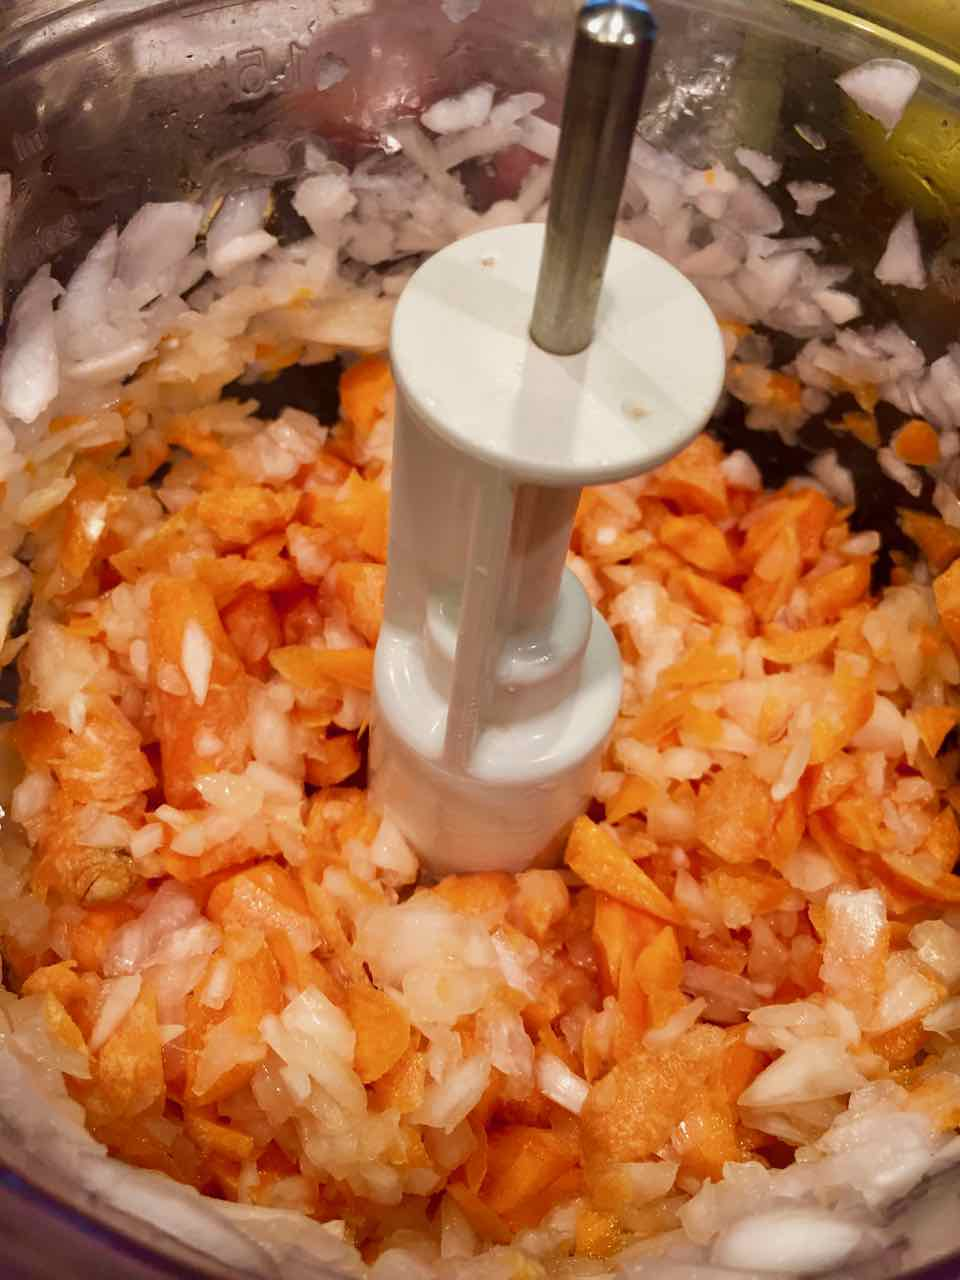 Image of chopped onion and carrots in a food processor.